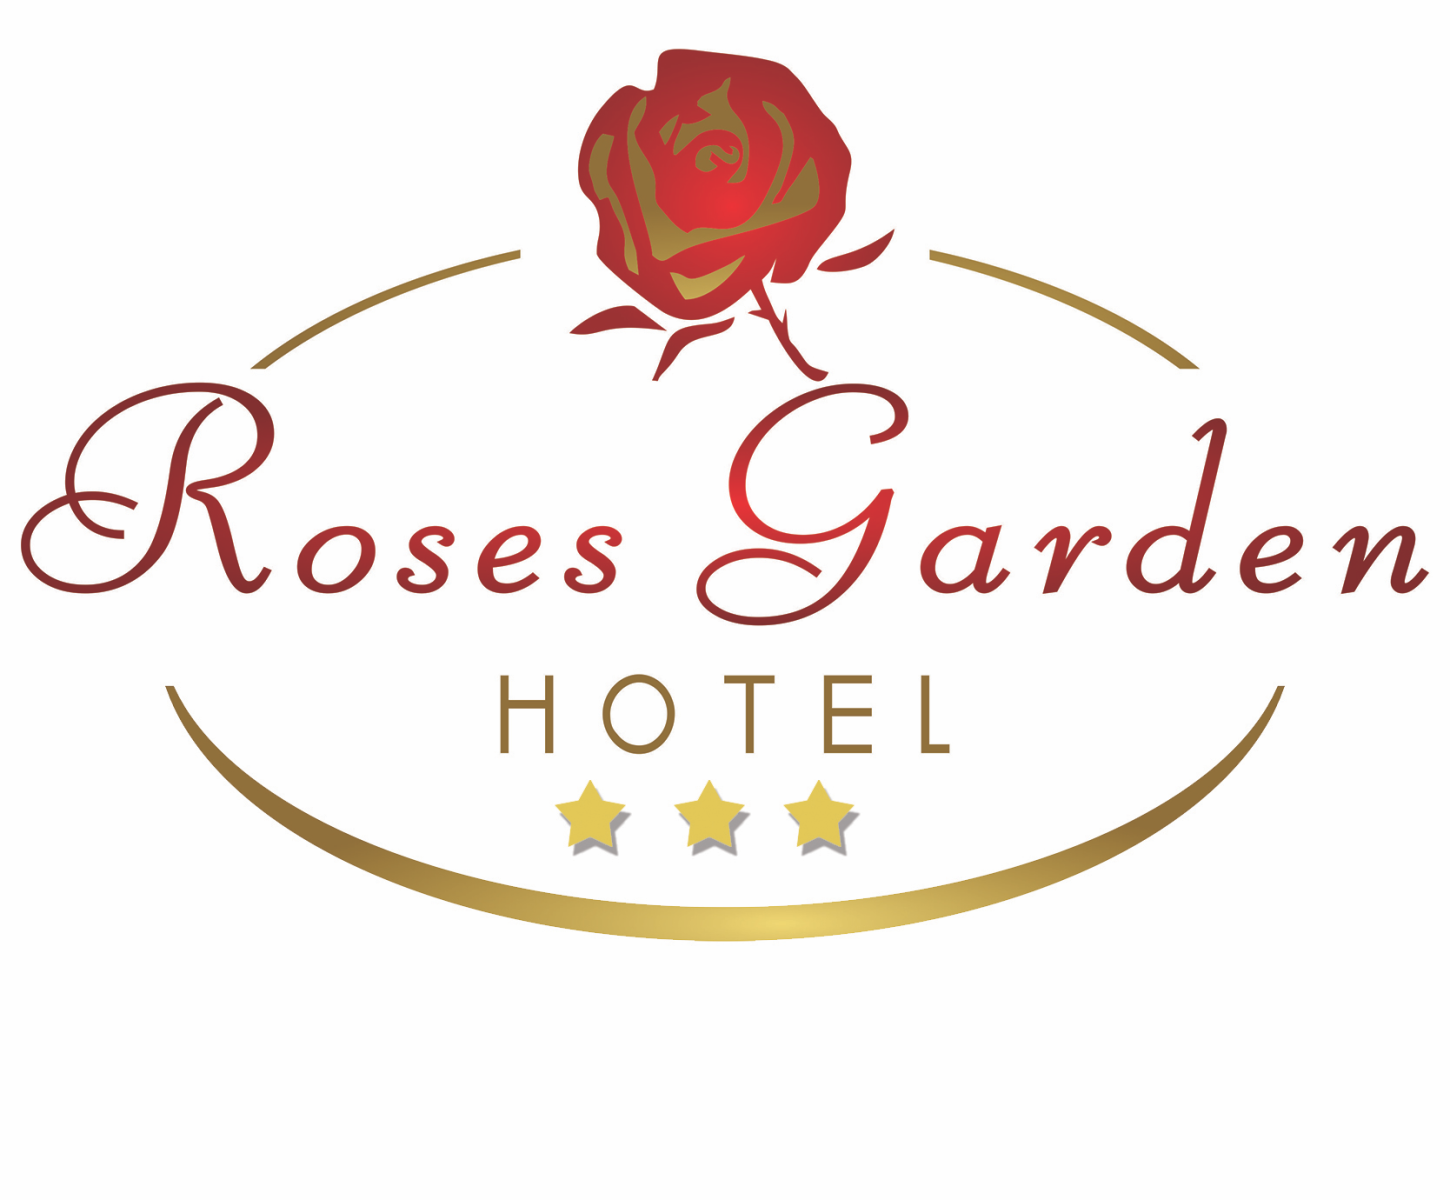 Hotel Management Software Clients - Roses Garden Hotel